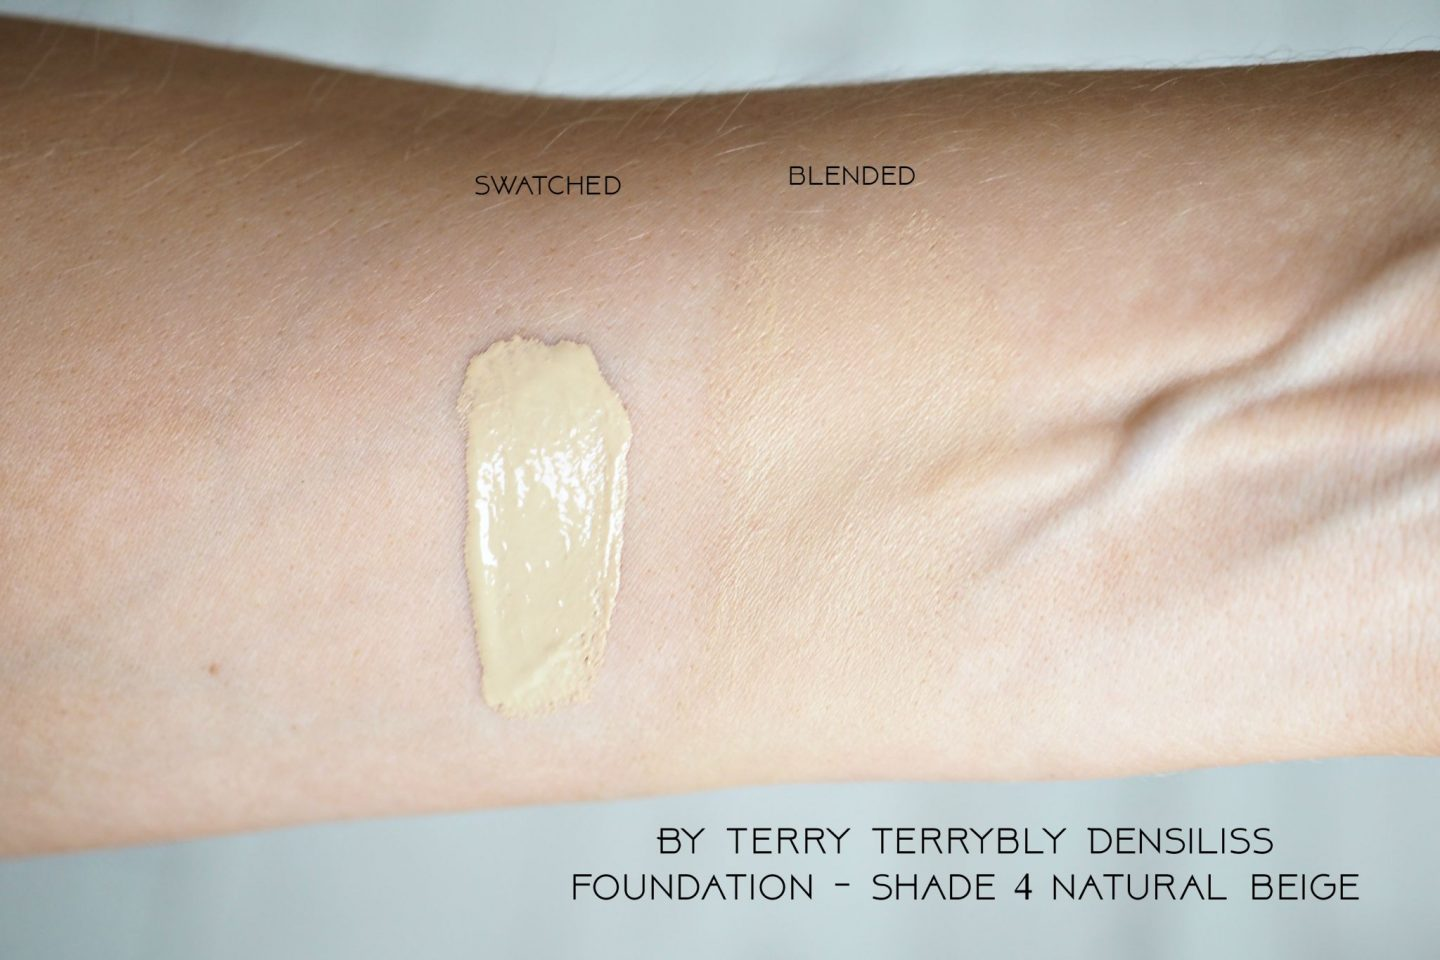 By Terry Terrybly Densiliss foundation shade 4 natural beige swatch